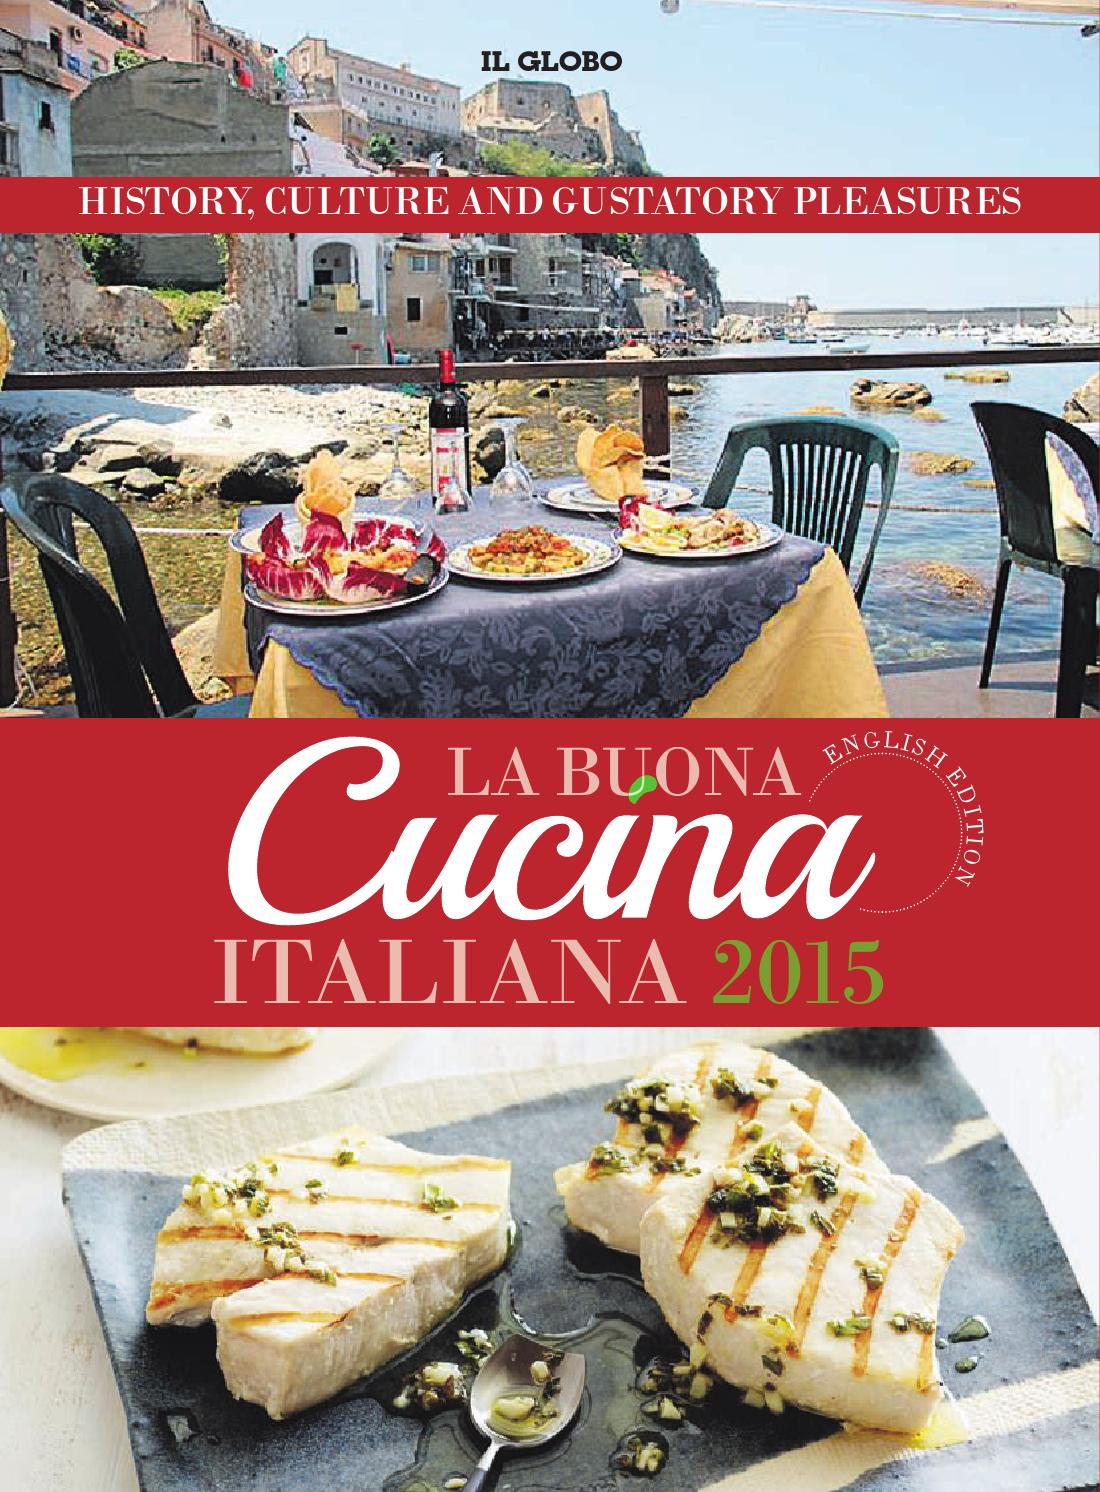 La Cucina Means What In English La Buona Cucina English Edition By Il Globo Issuu